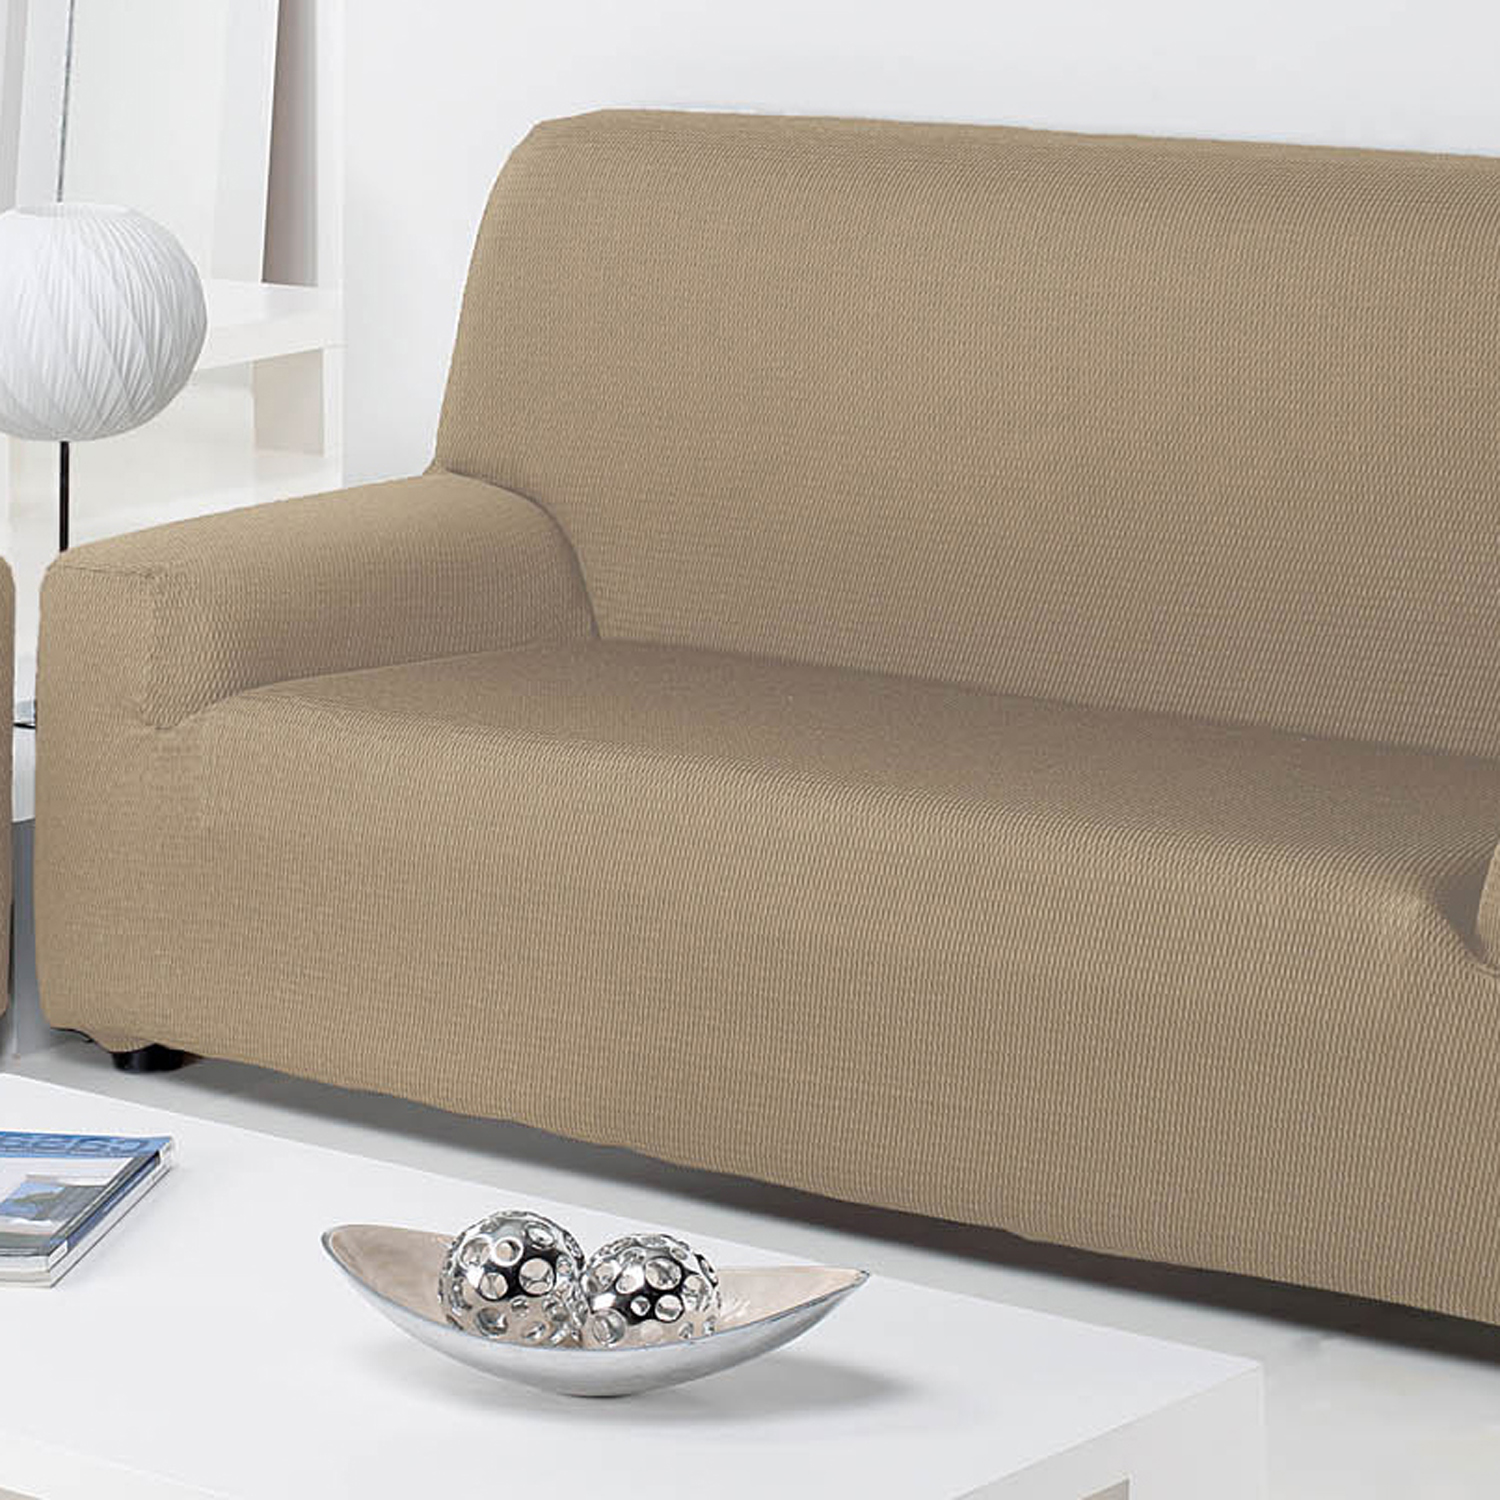 sofa armchair covers desk chair clearance easystretch cover linen home store 43 more